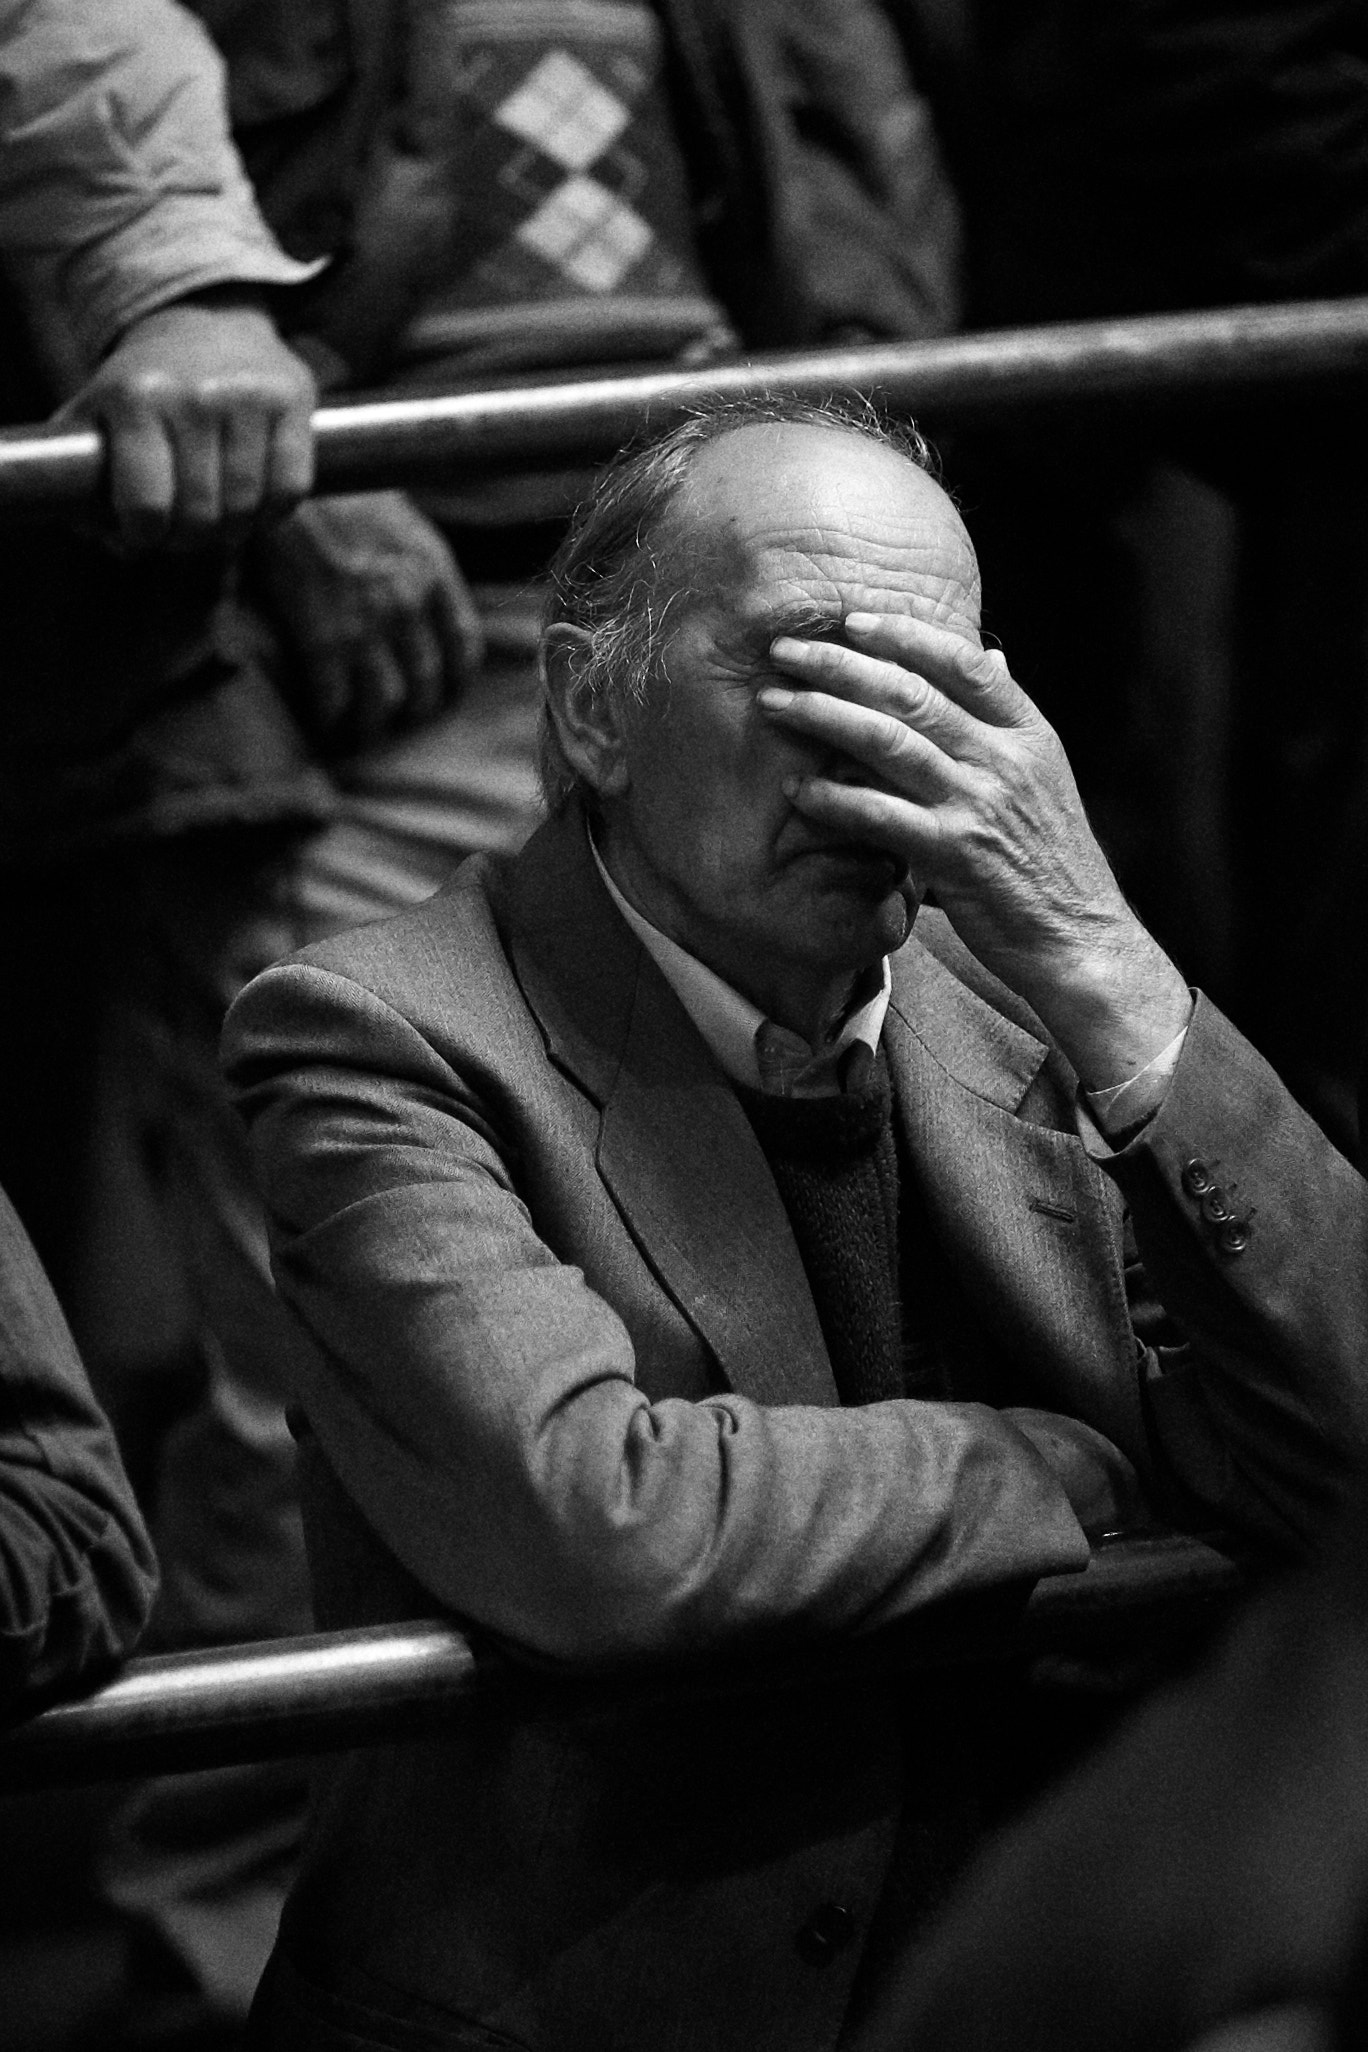 Portrait of Farmer, Draperstown Cattle Mart Market, County Londonderry, Northern Ireland. ©Laurence Gibson.